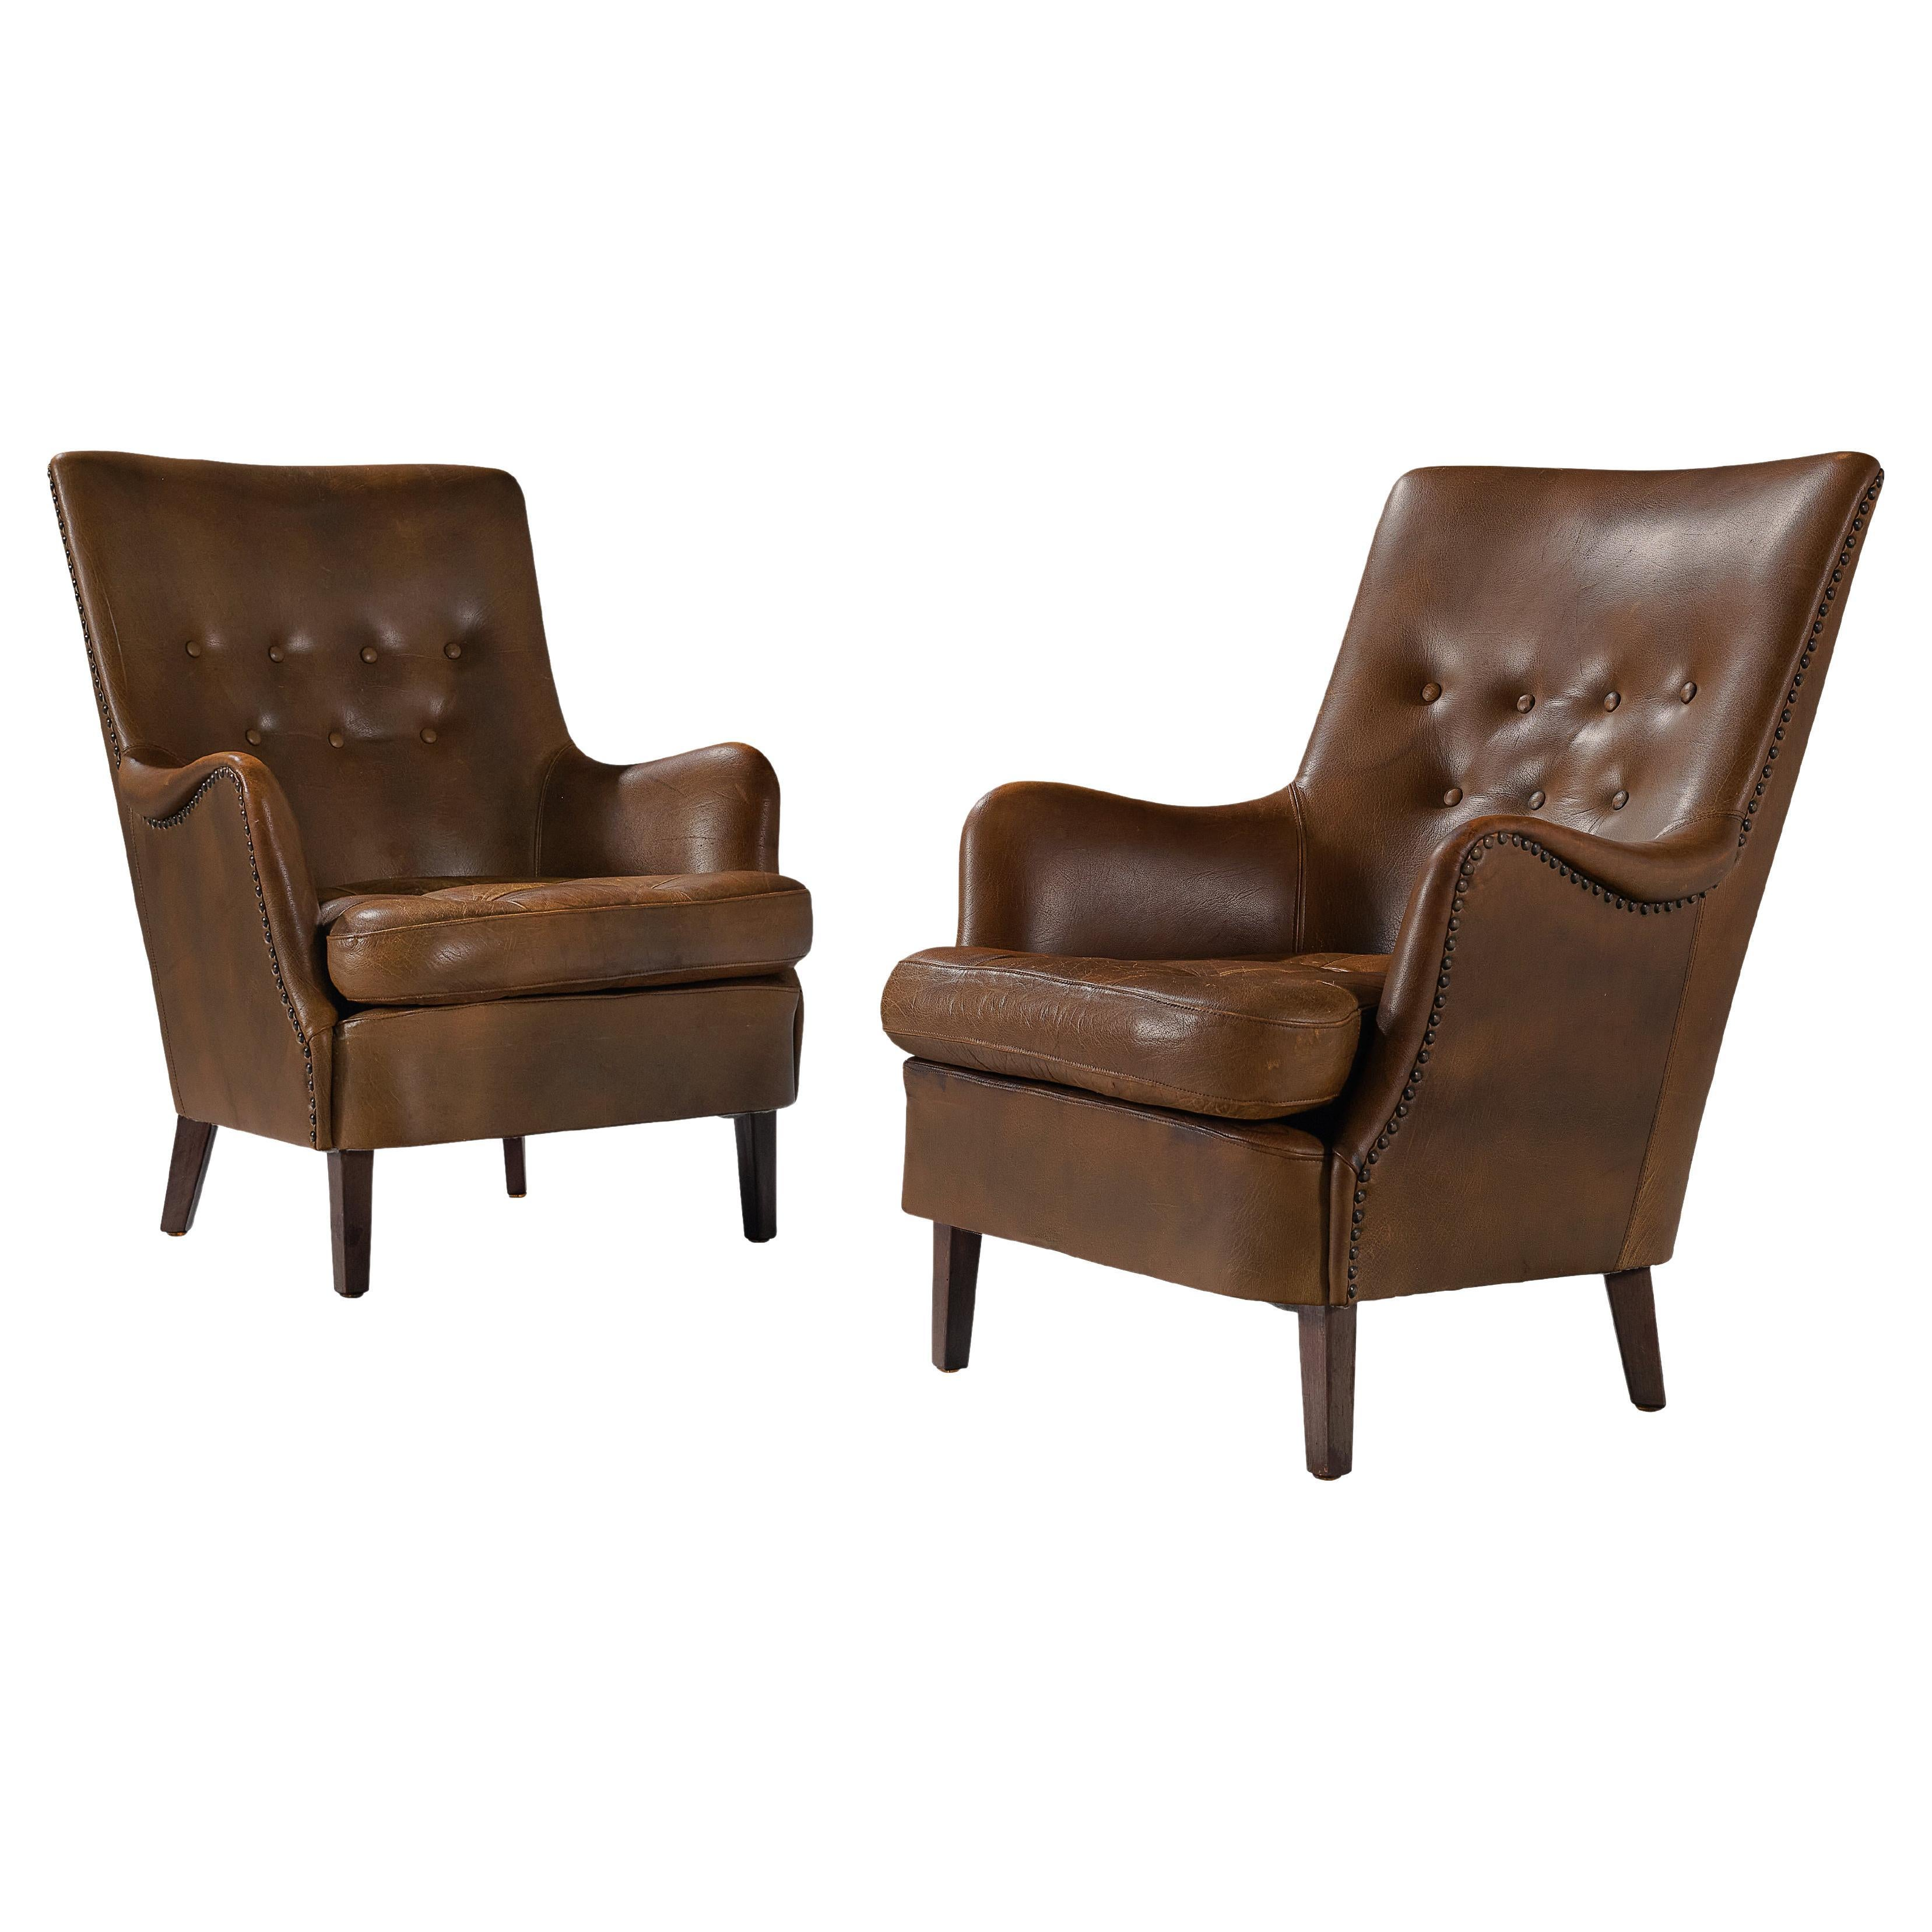 Pair of Danish Lounge Chairs in Patinated Brown Leather